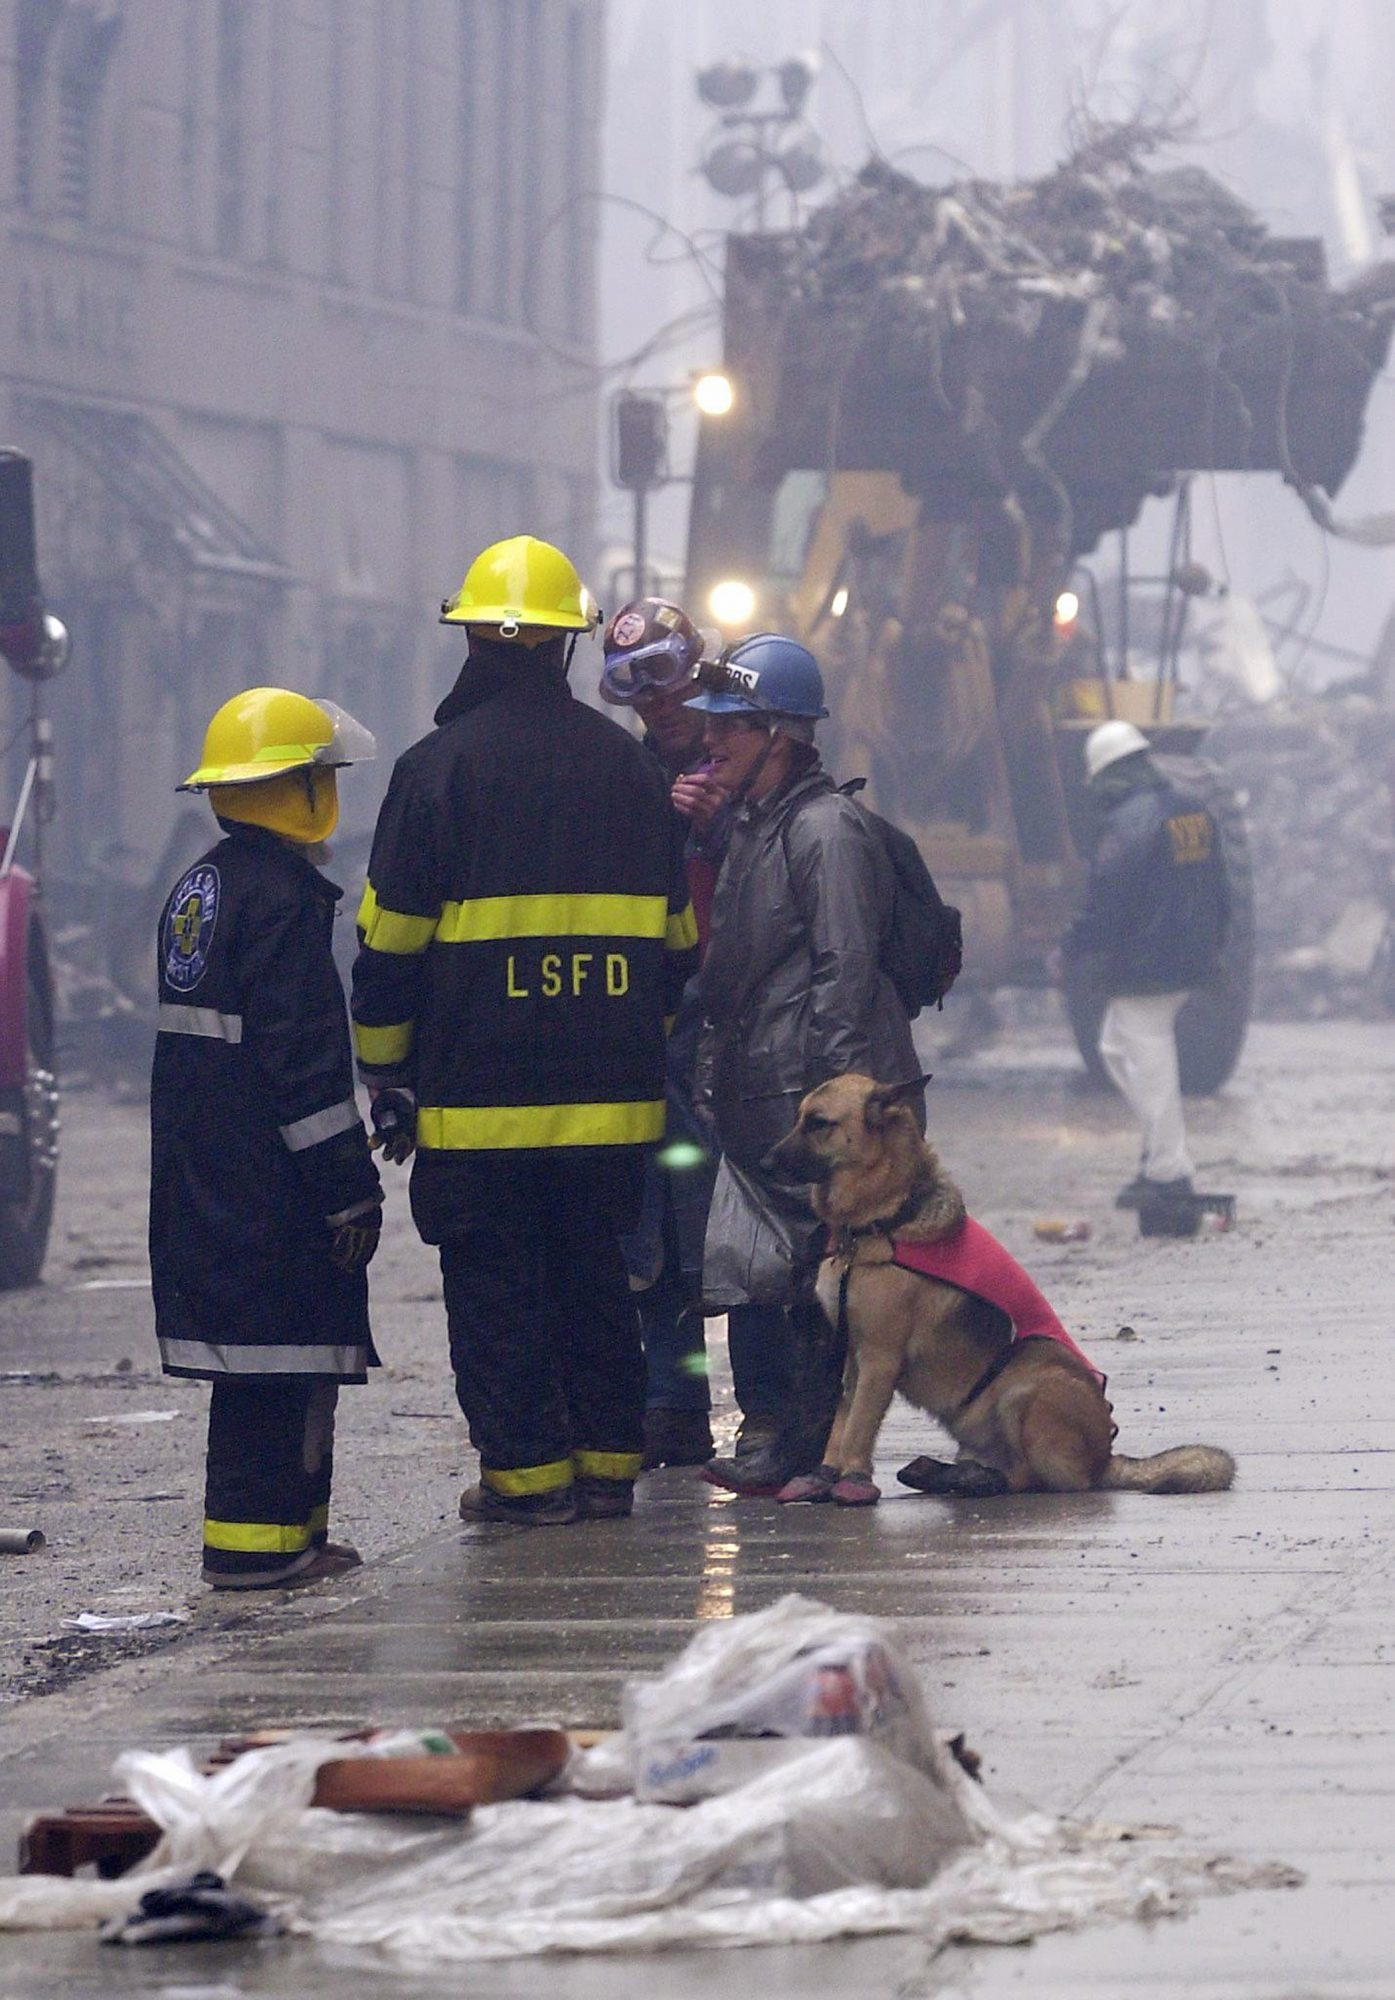 9/11 Dog with firefighters during the rescue and cleanup after the attacks